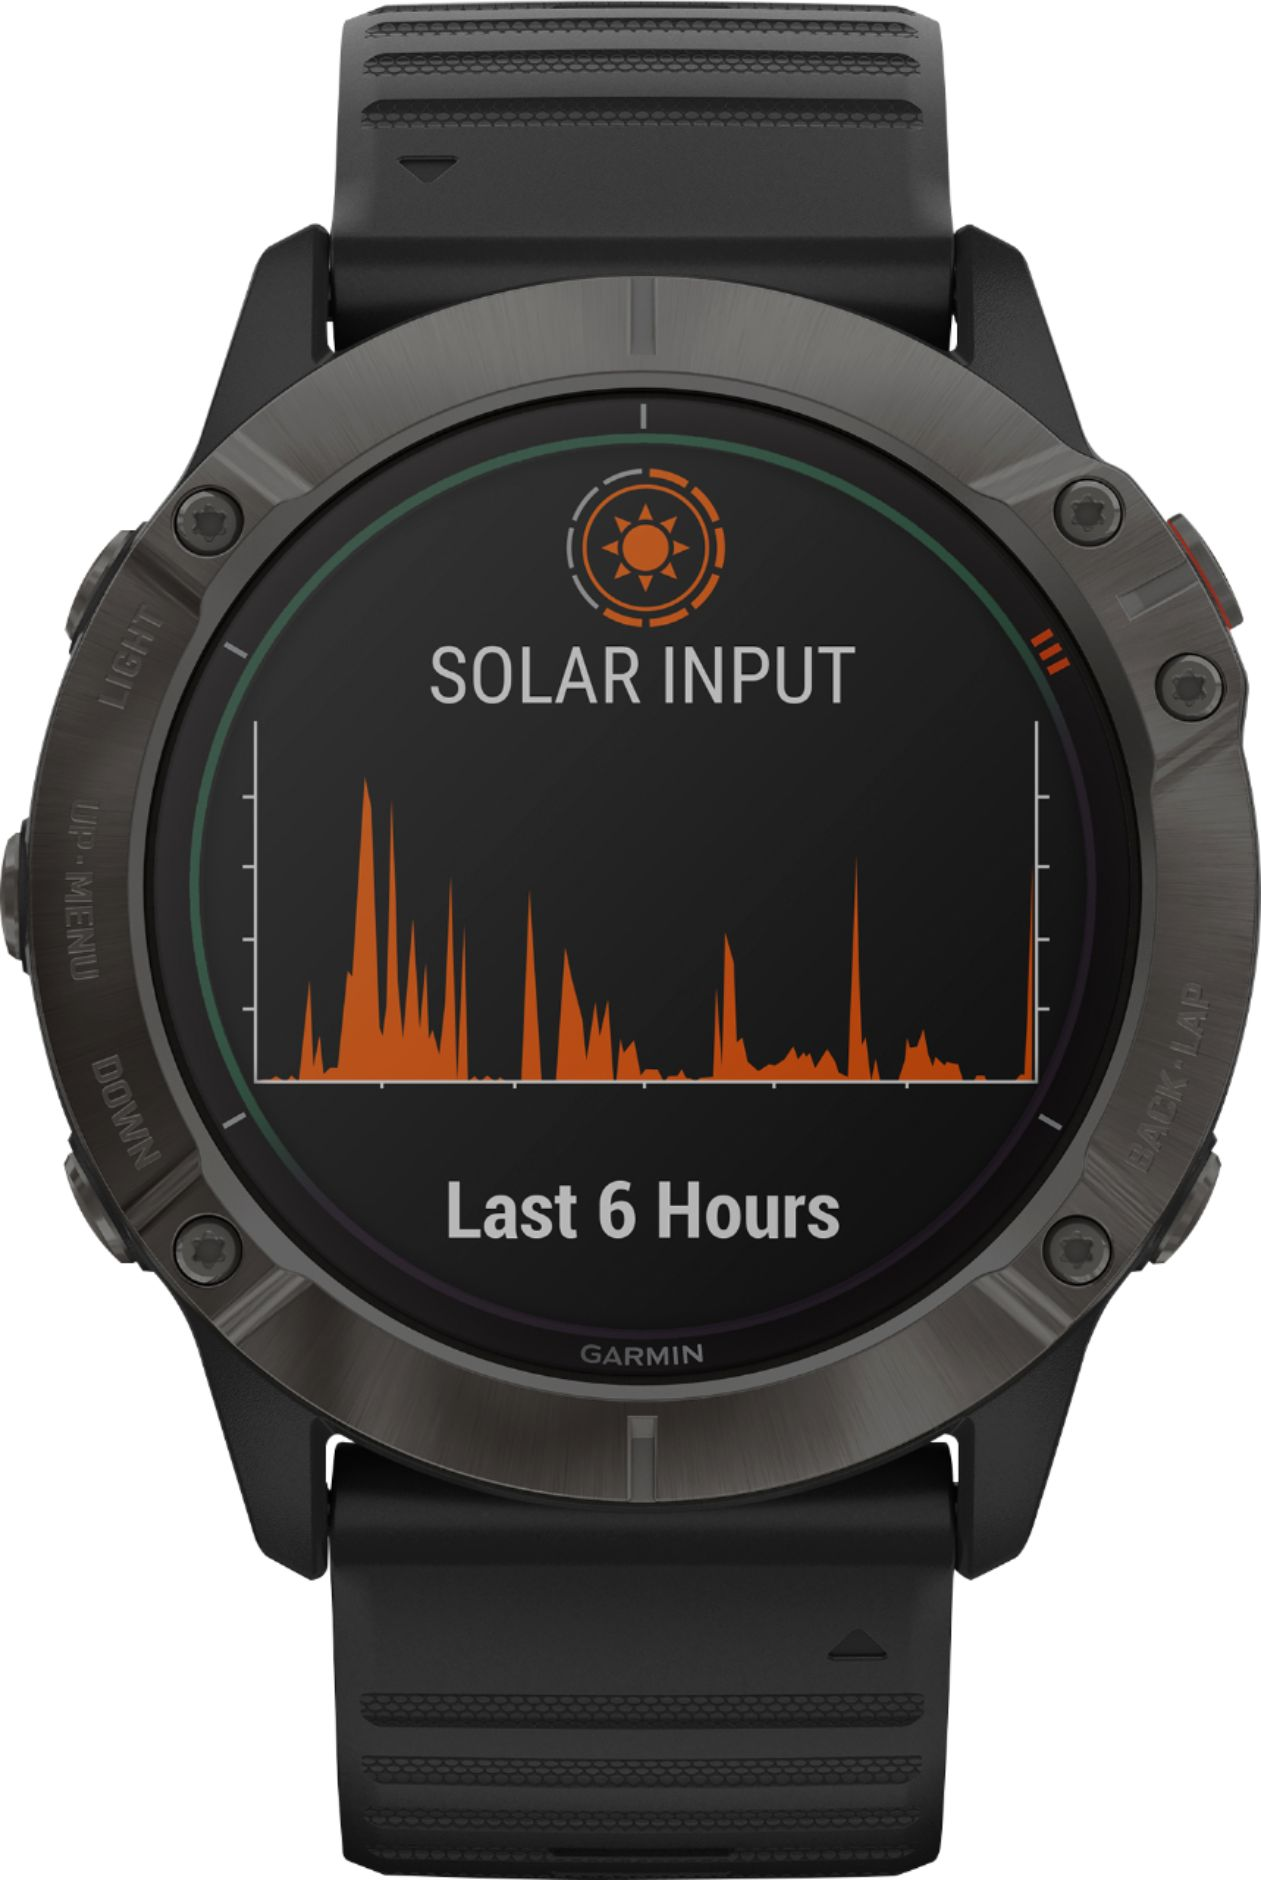 Garmin - Fenix 6X Pro Solar GPS/GLONASS/Galileo Watch - Black